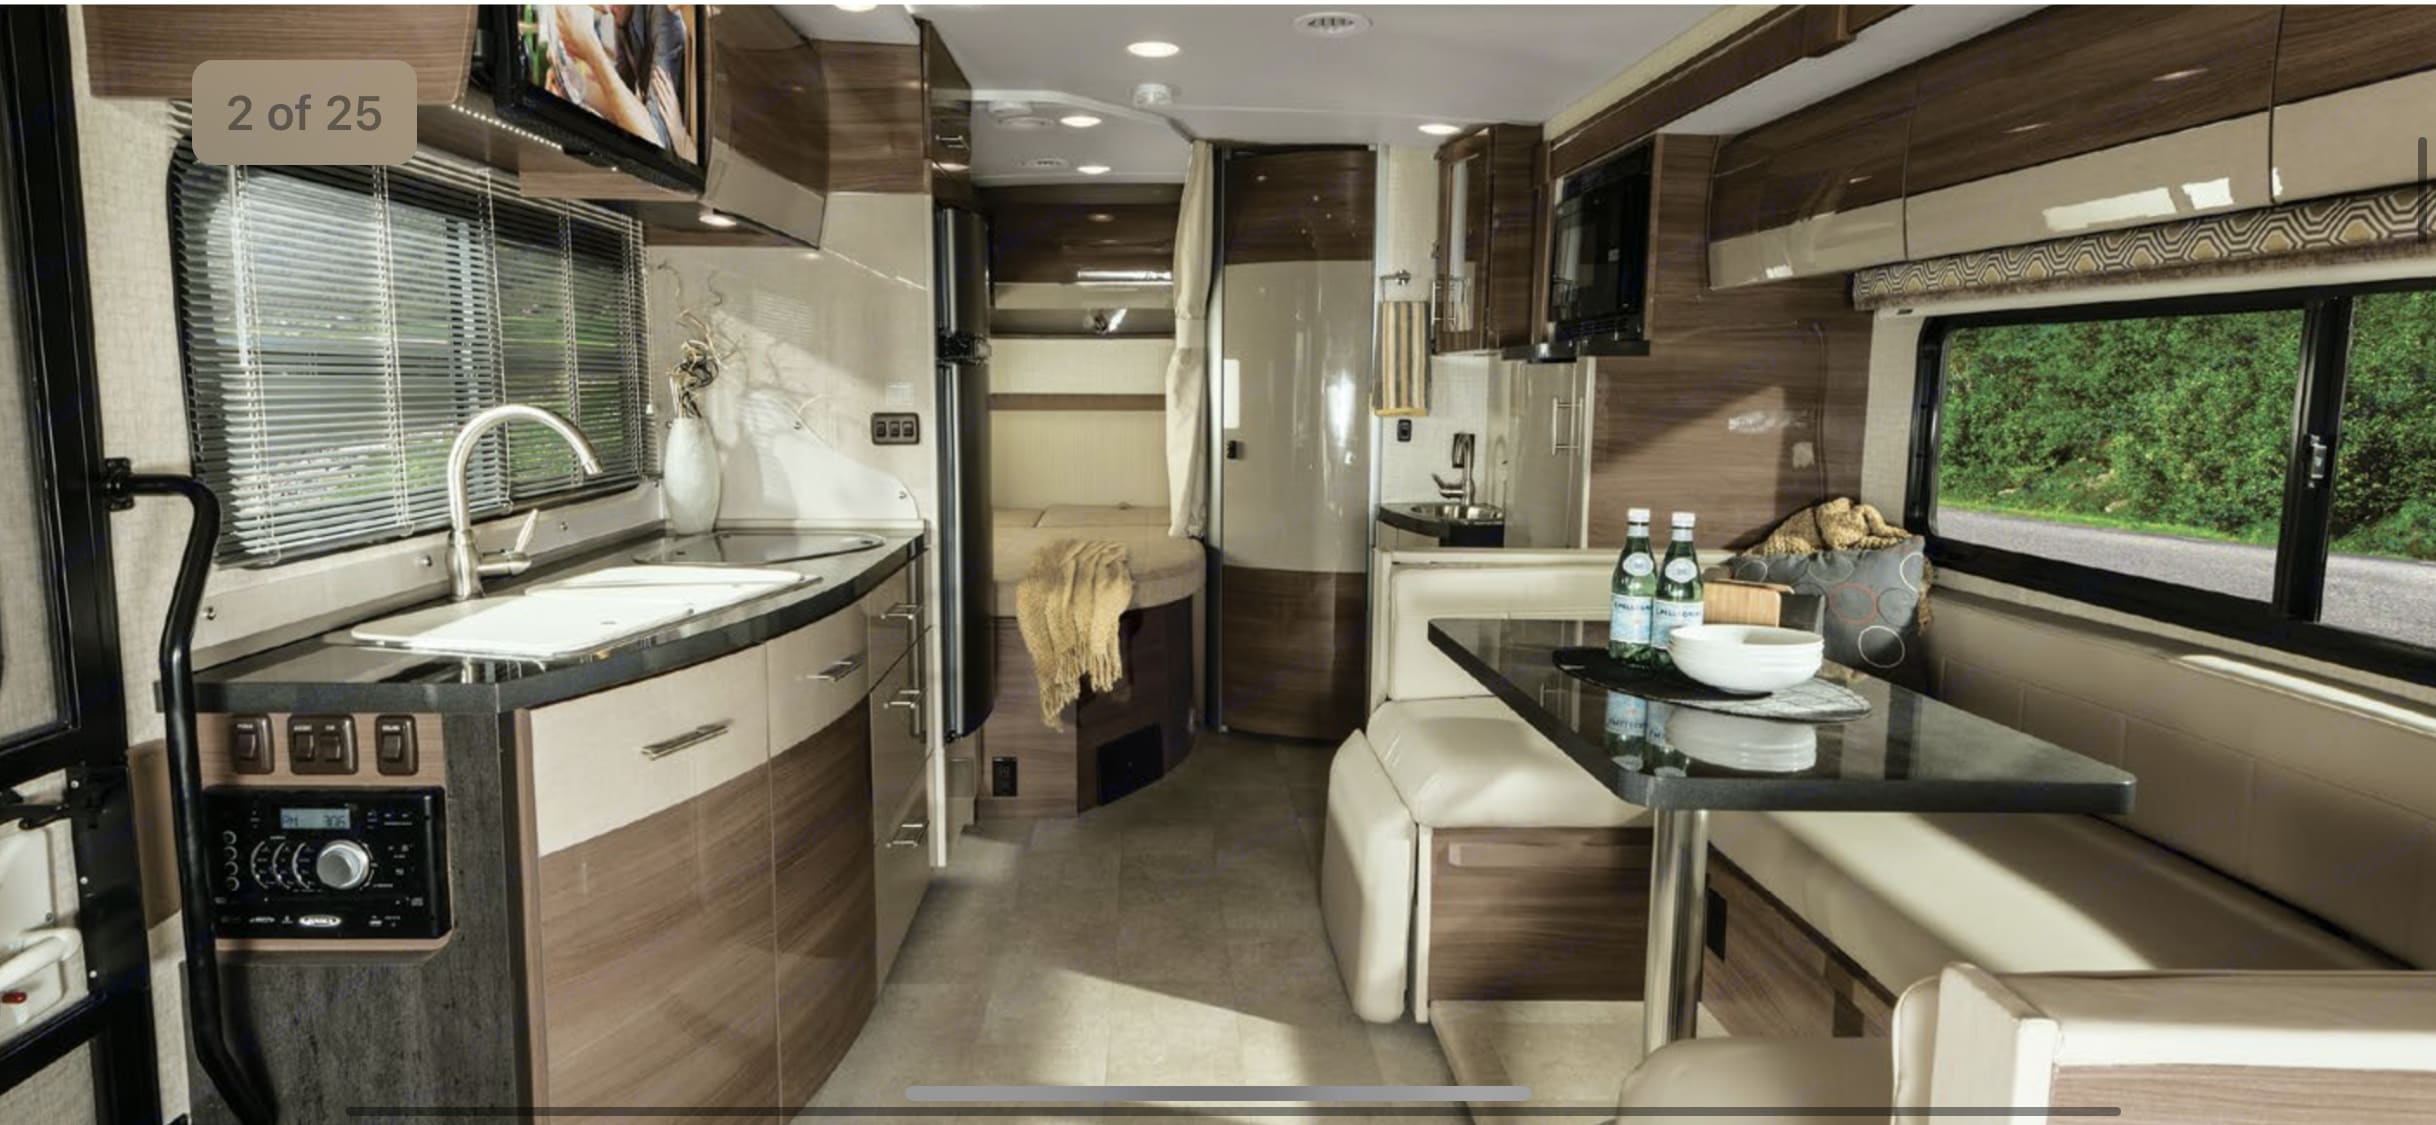 Dinette has 3 Seat belts and seats 5 for meals. Winnebago Navion 2015